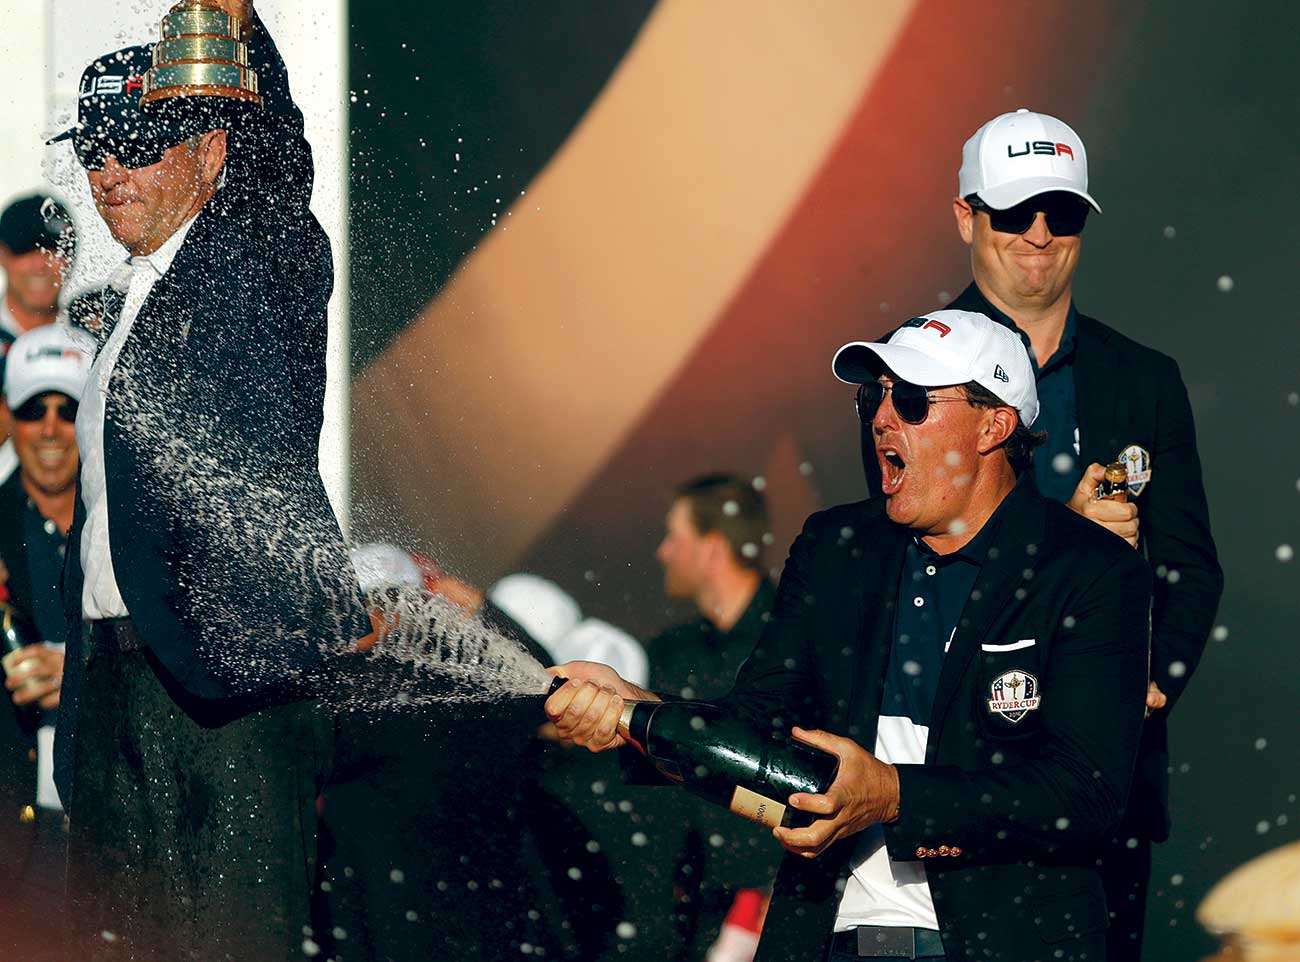 Phil Mickelson Hazeltine Ryder Cup